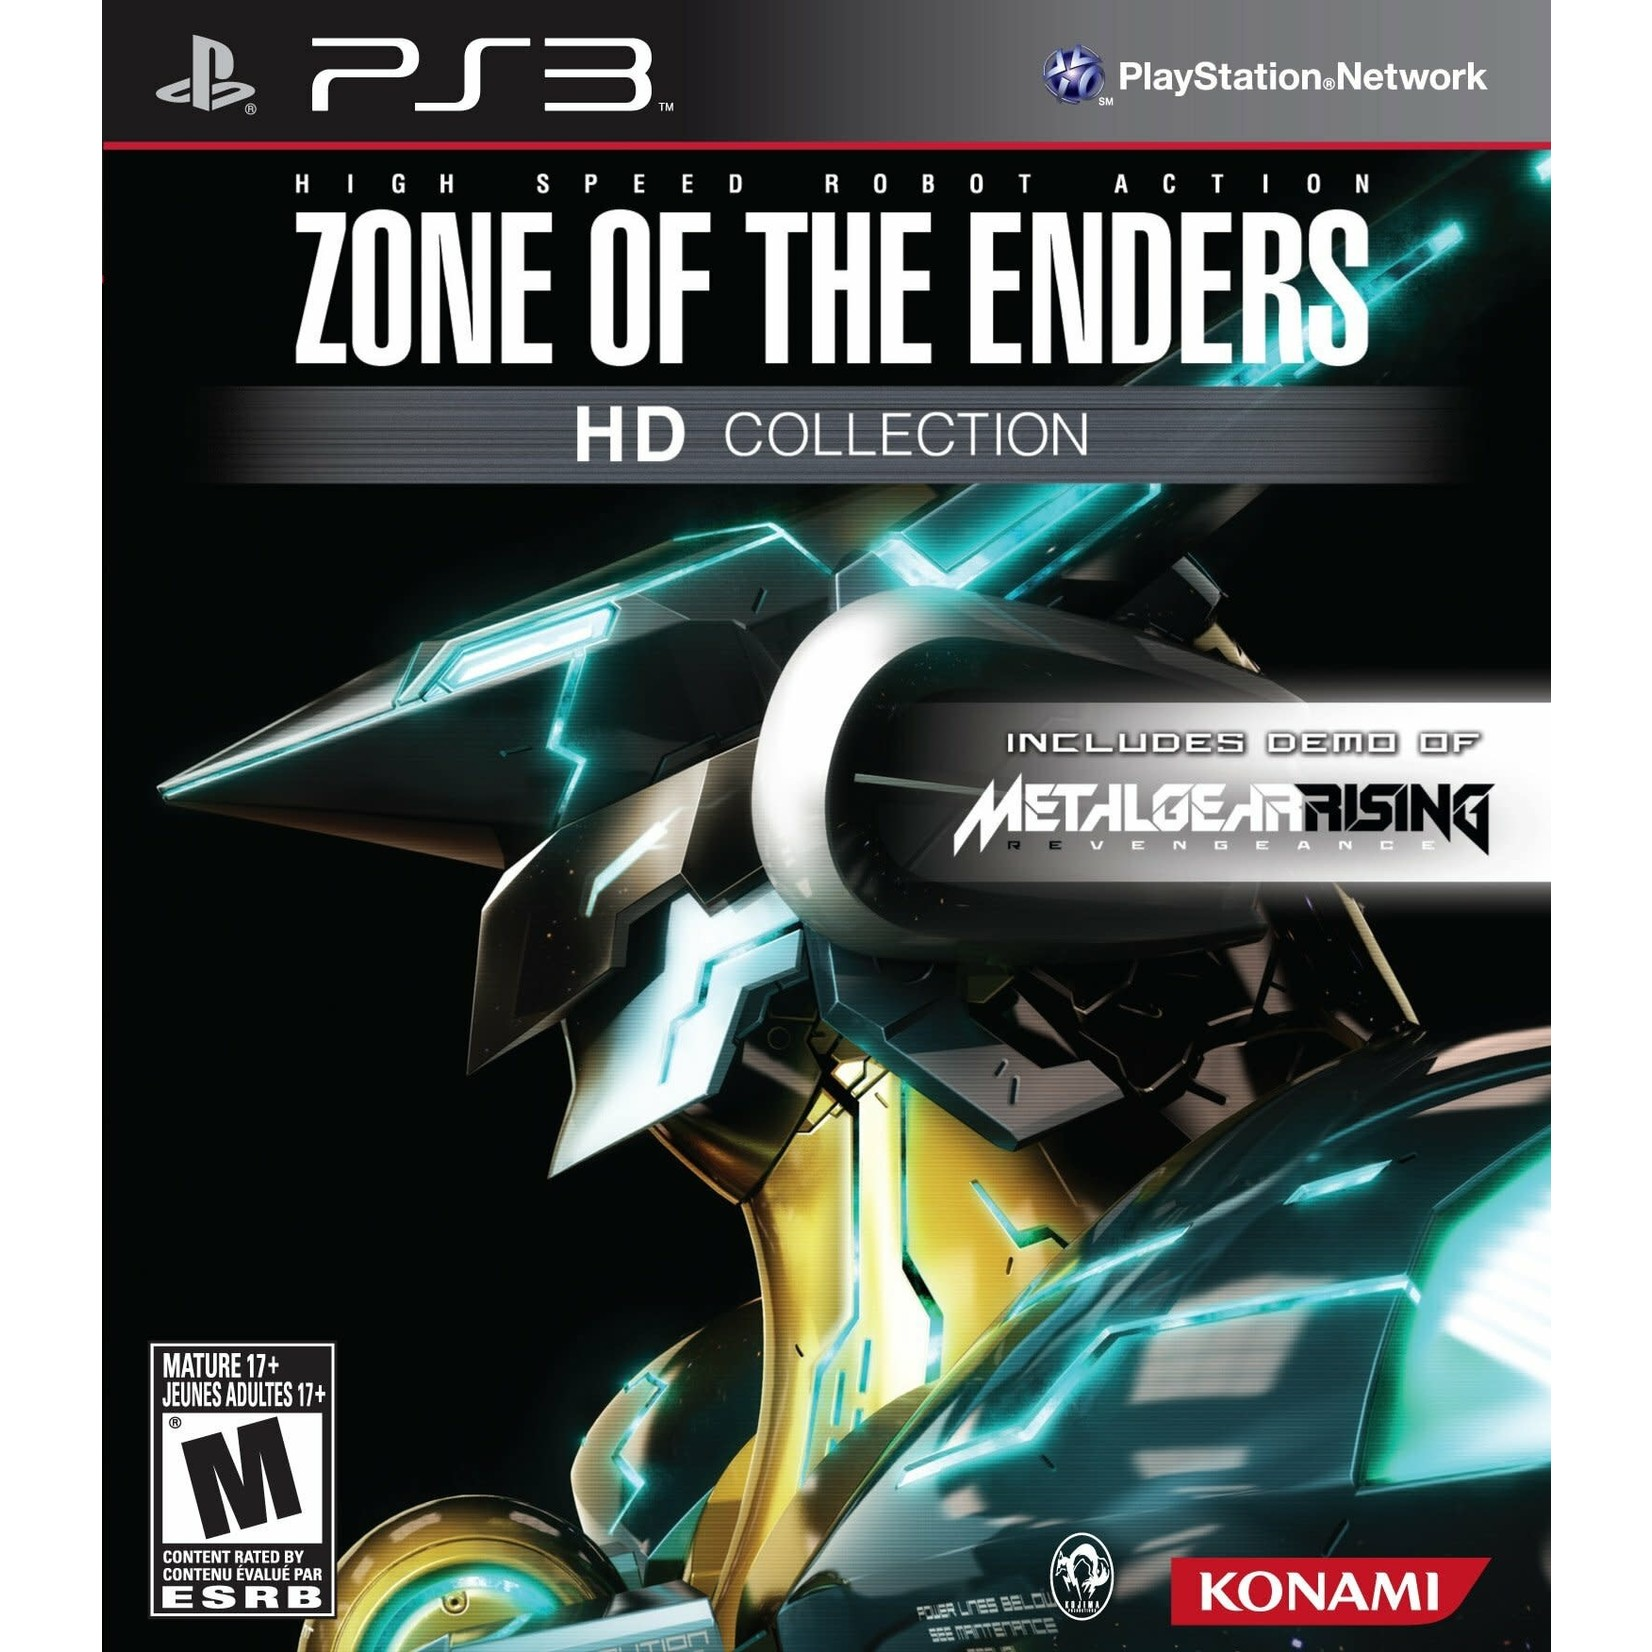 PS3-Zone of the enders HD collection